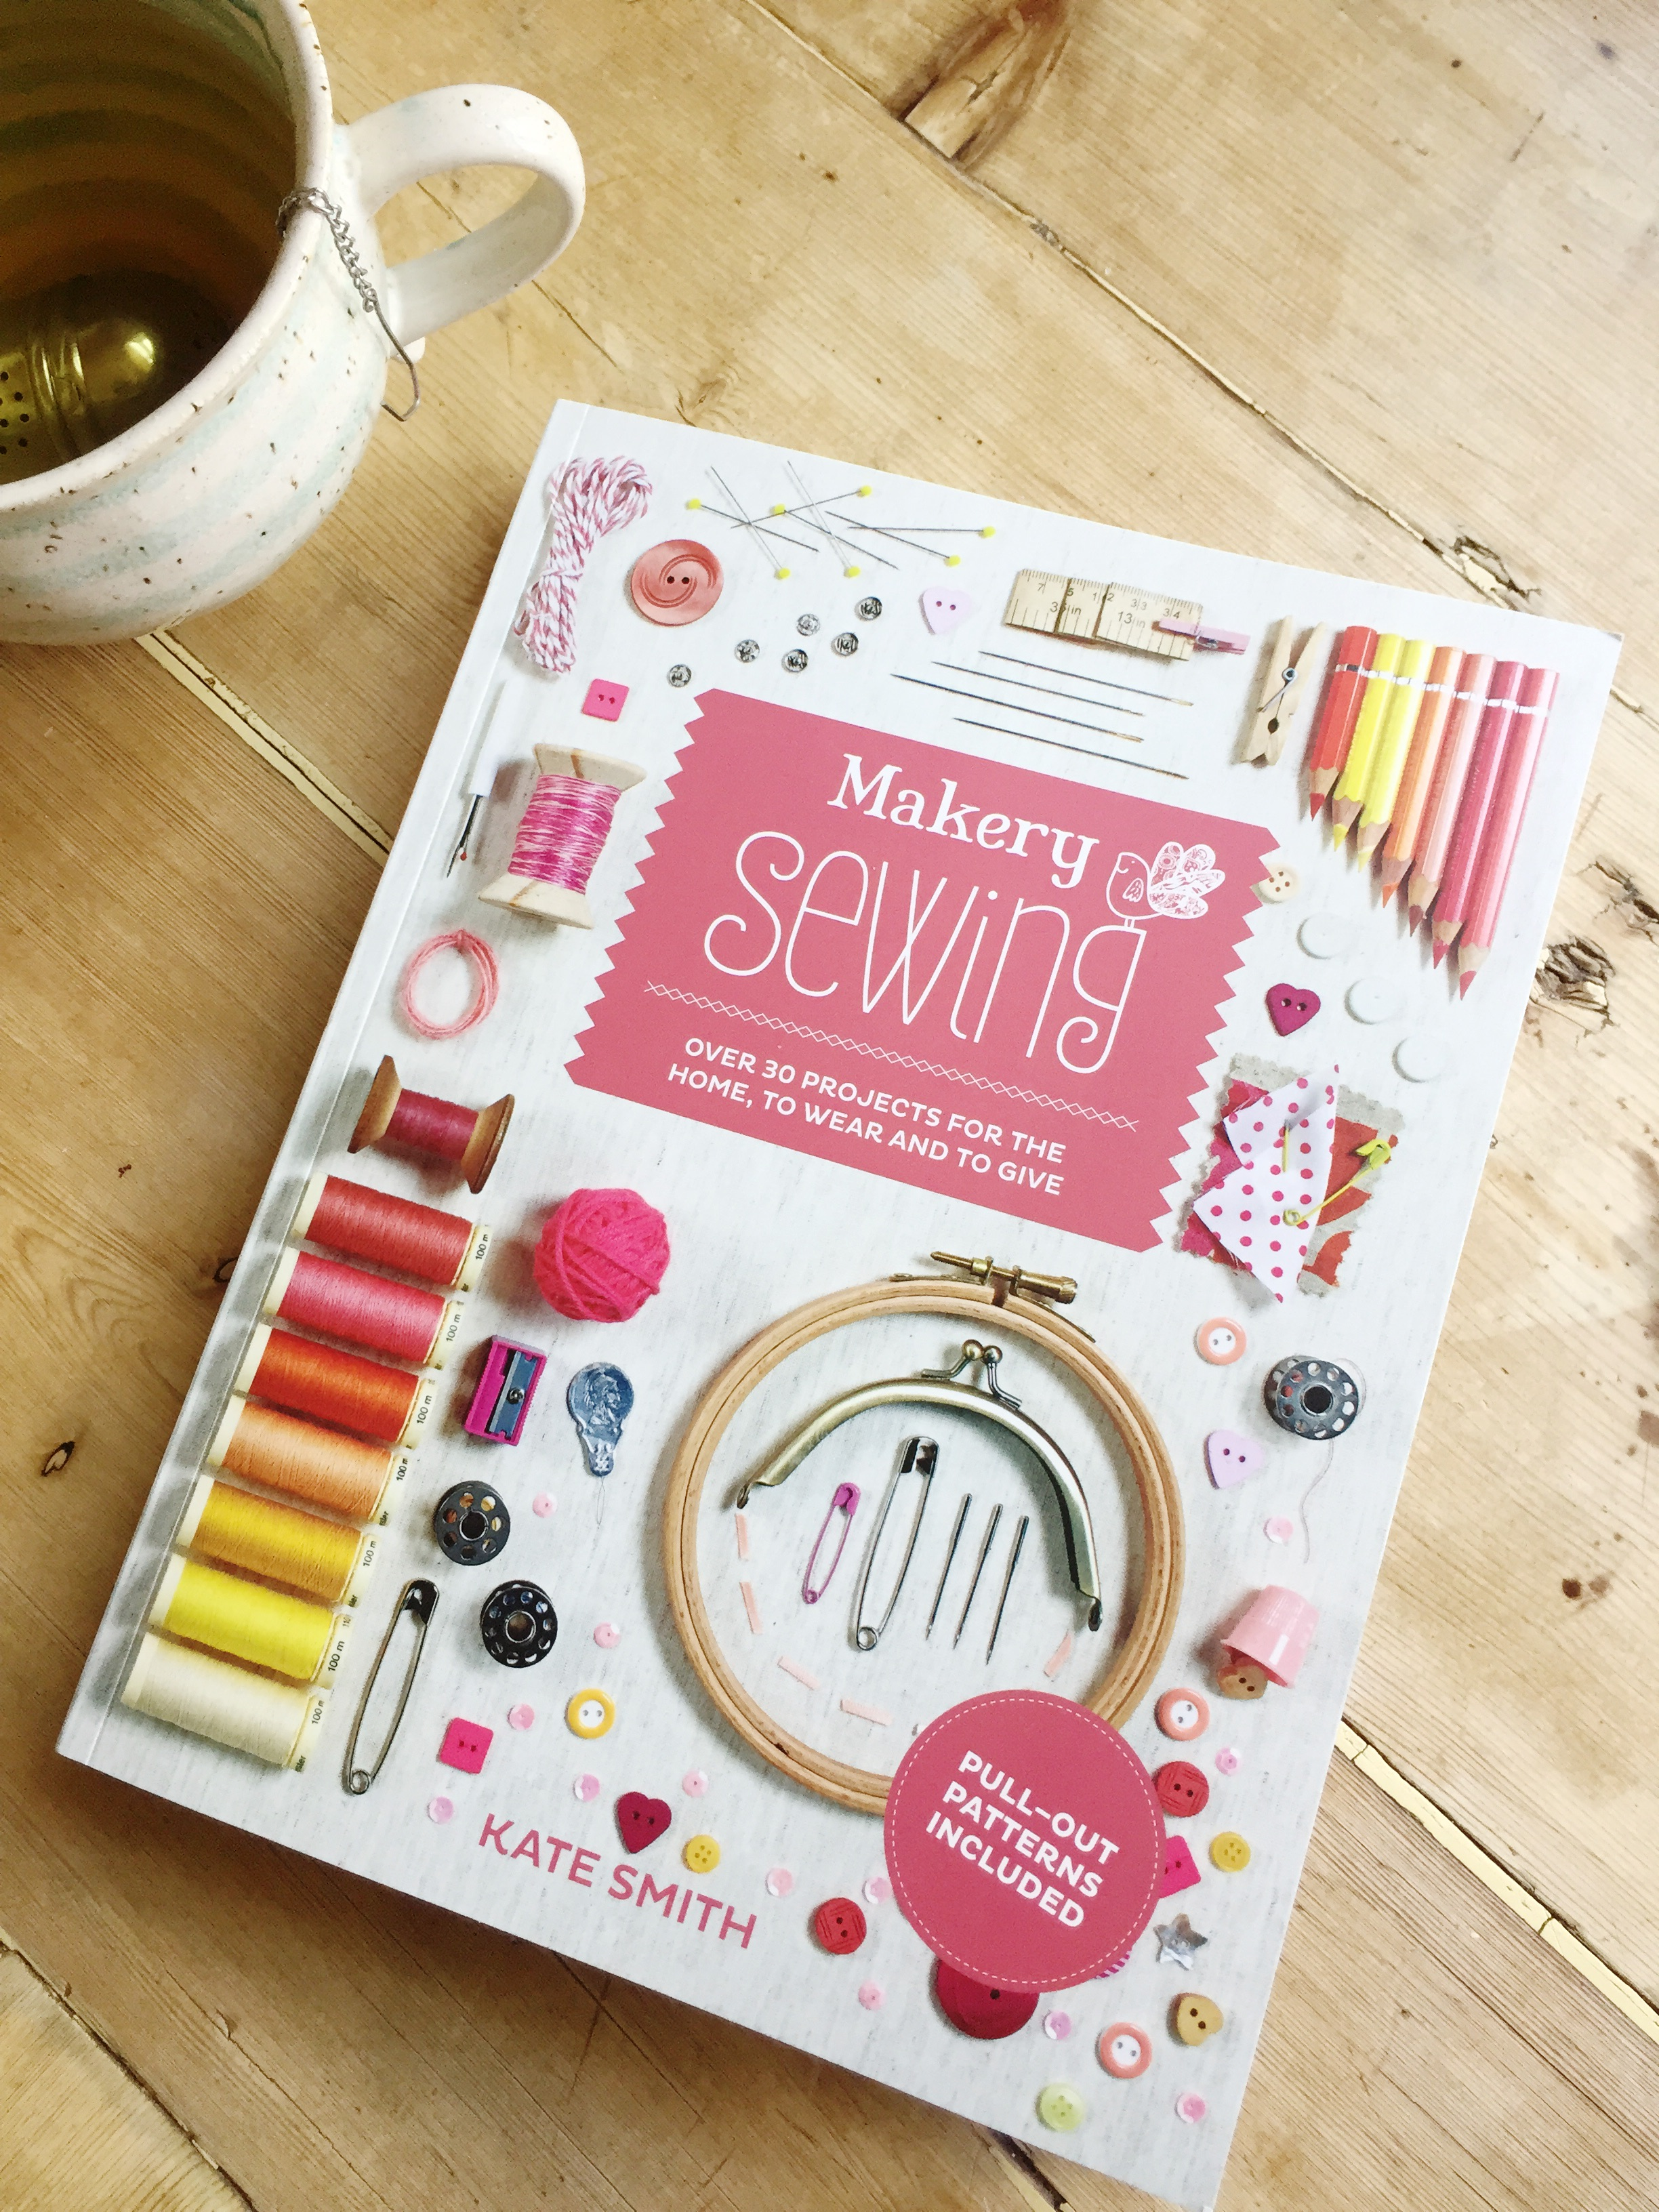 A review of Makery Sewing by Kate Smith